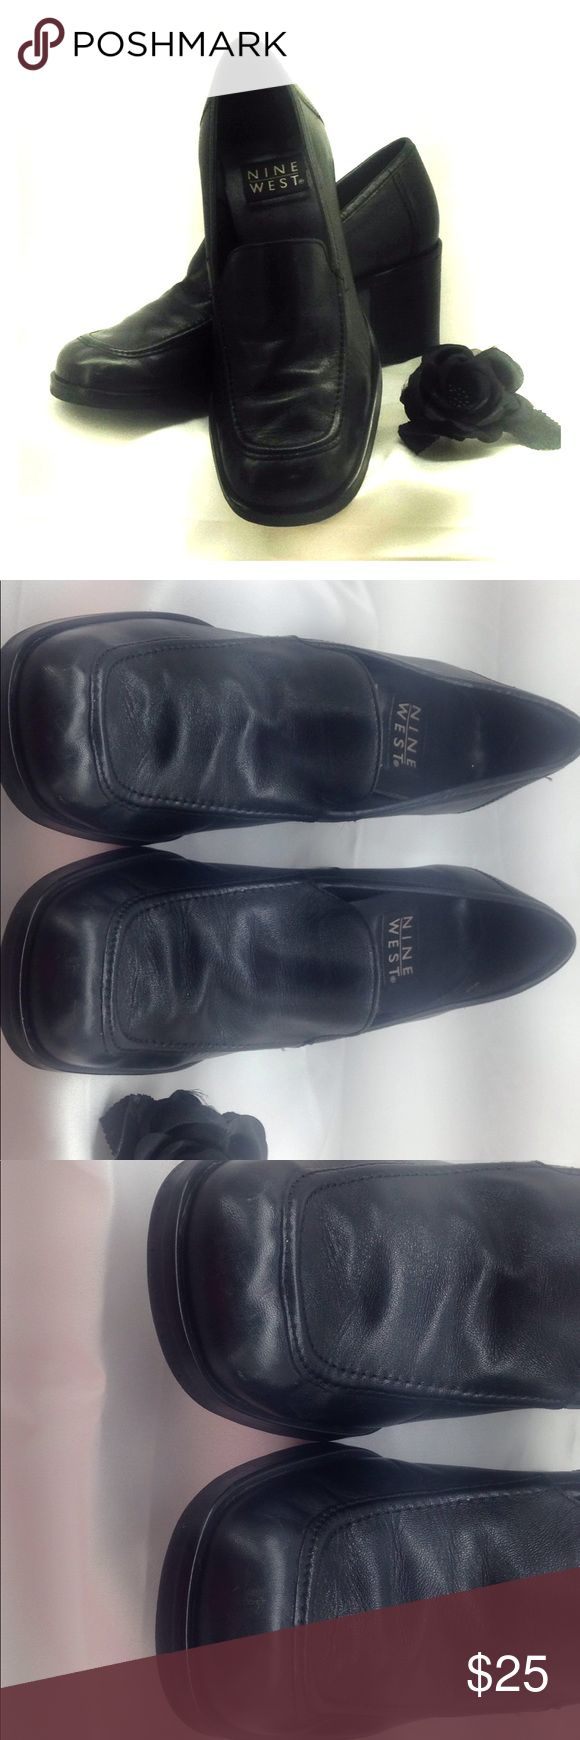 Nine West black leather loafer shoes. Gently worn. Good shape and very comfortable. Has been stored in plastic shoe box! Nine West Shoes Flats & Loafers